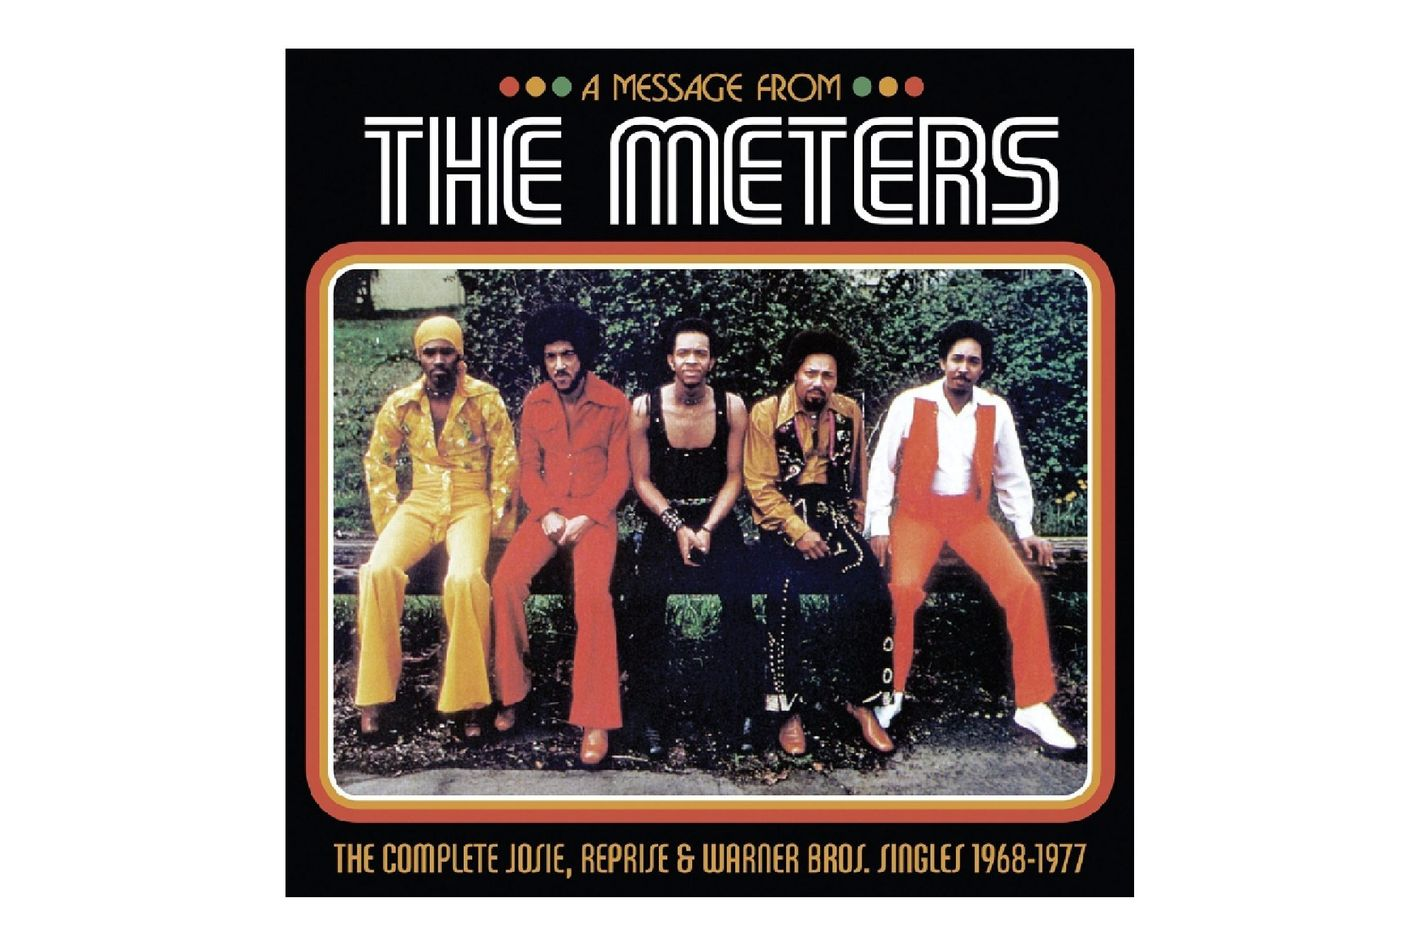 Music gift ideas box sets vinyl books 2017 the meters a message from the meters the complete josie reprise warner publicscrutiny Gallery